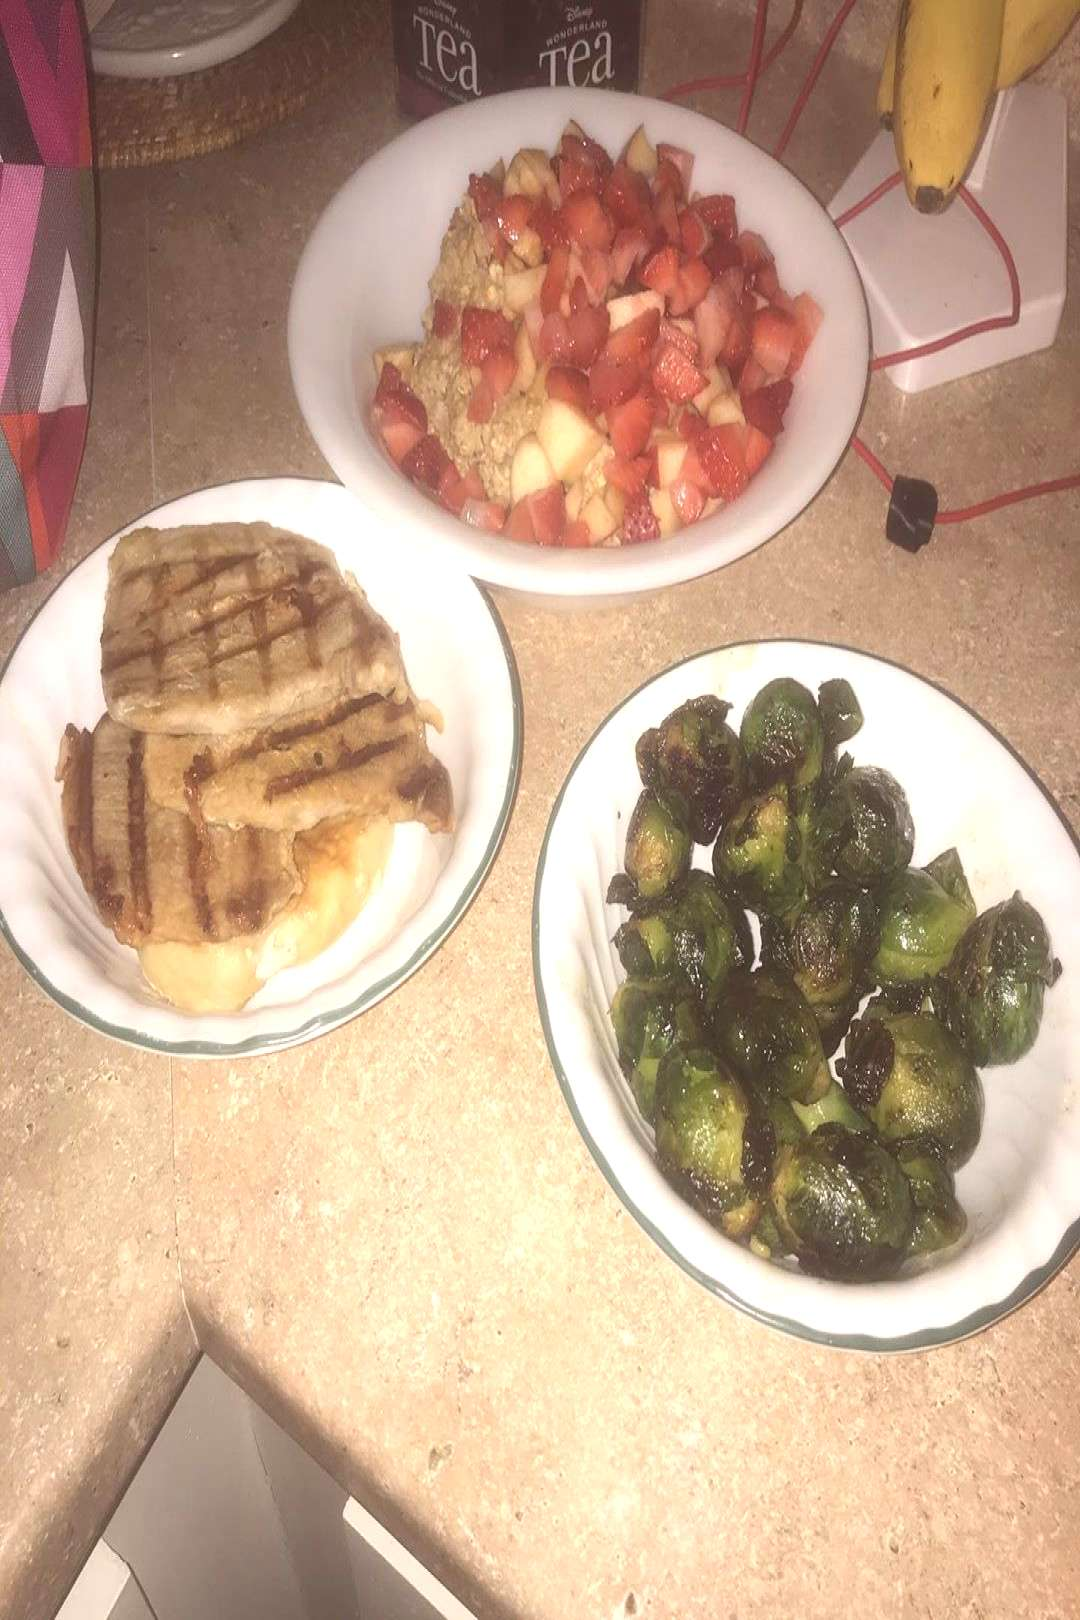 Getting good at meal prep. It helps with breakfast and lunches. I